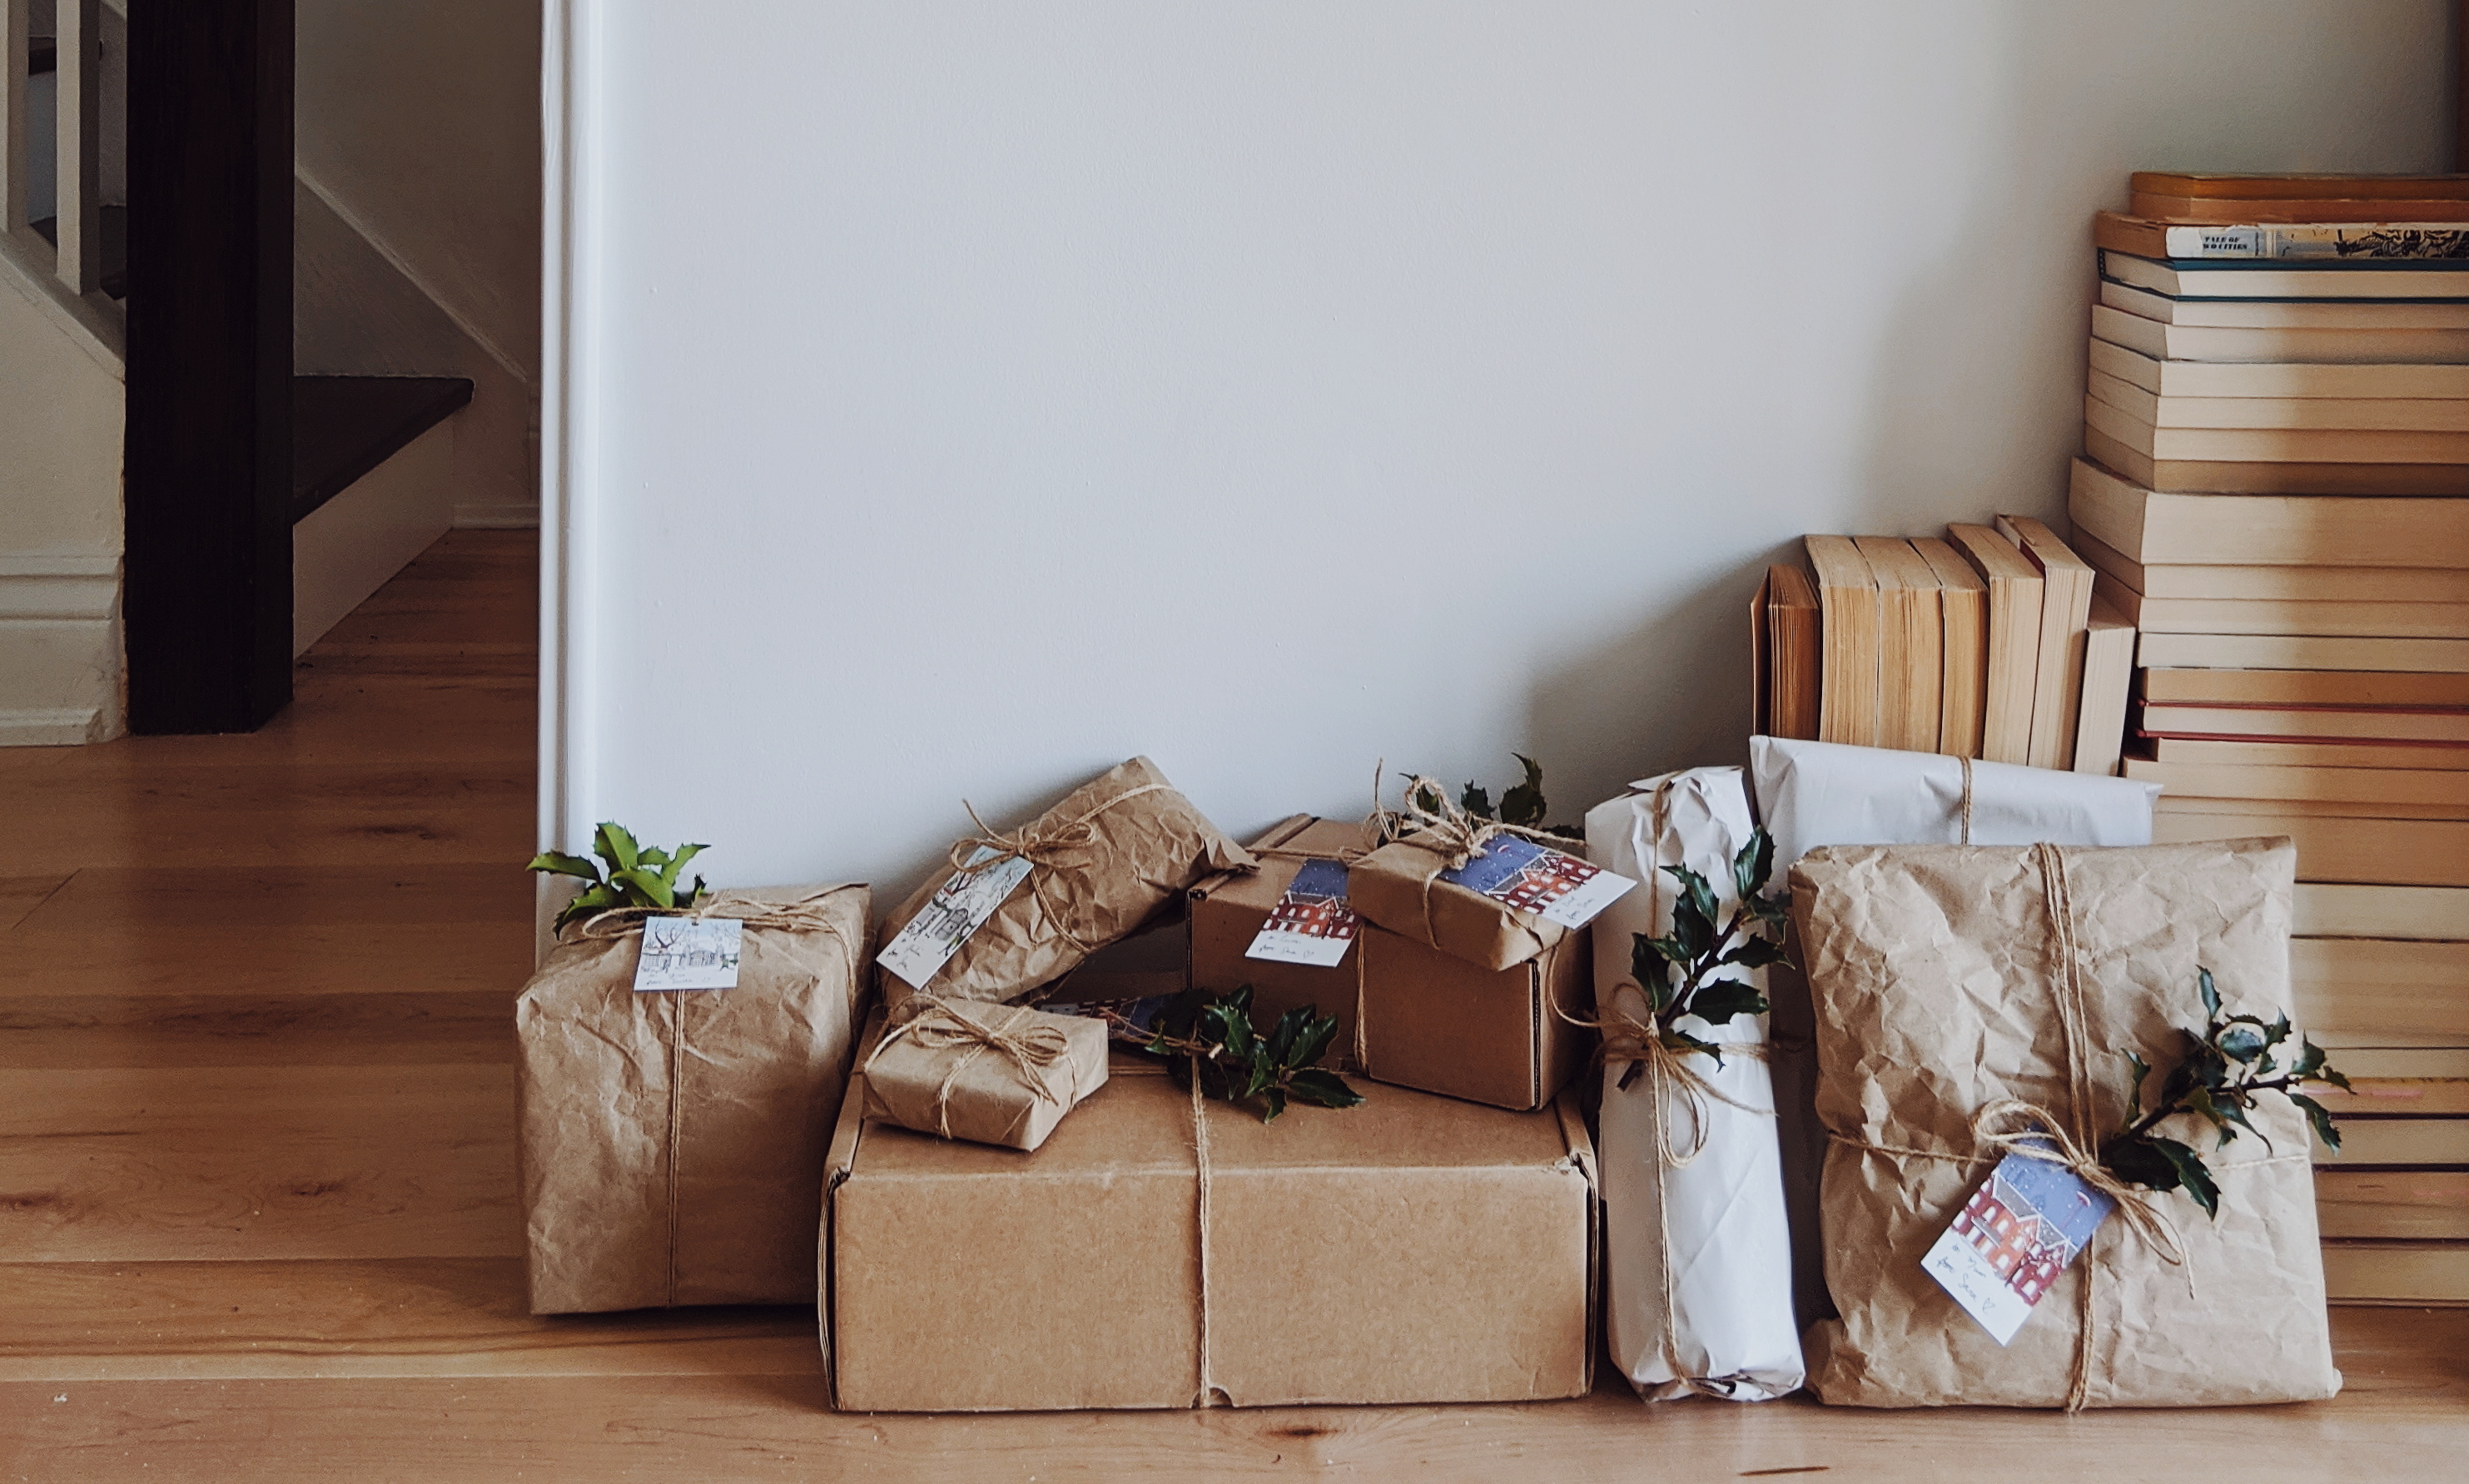 The affordable, thoughtful, sustainable gift guide